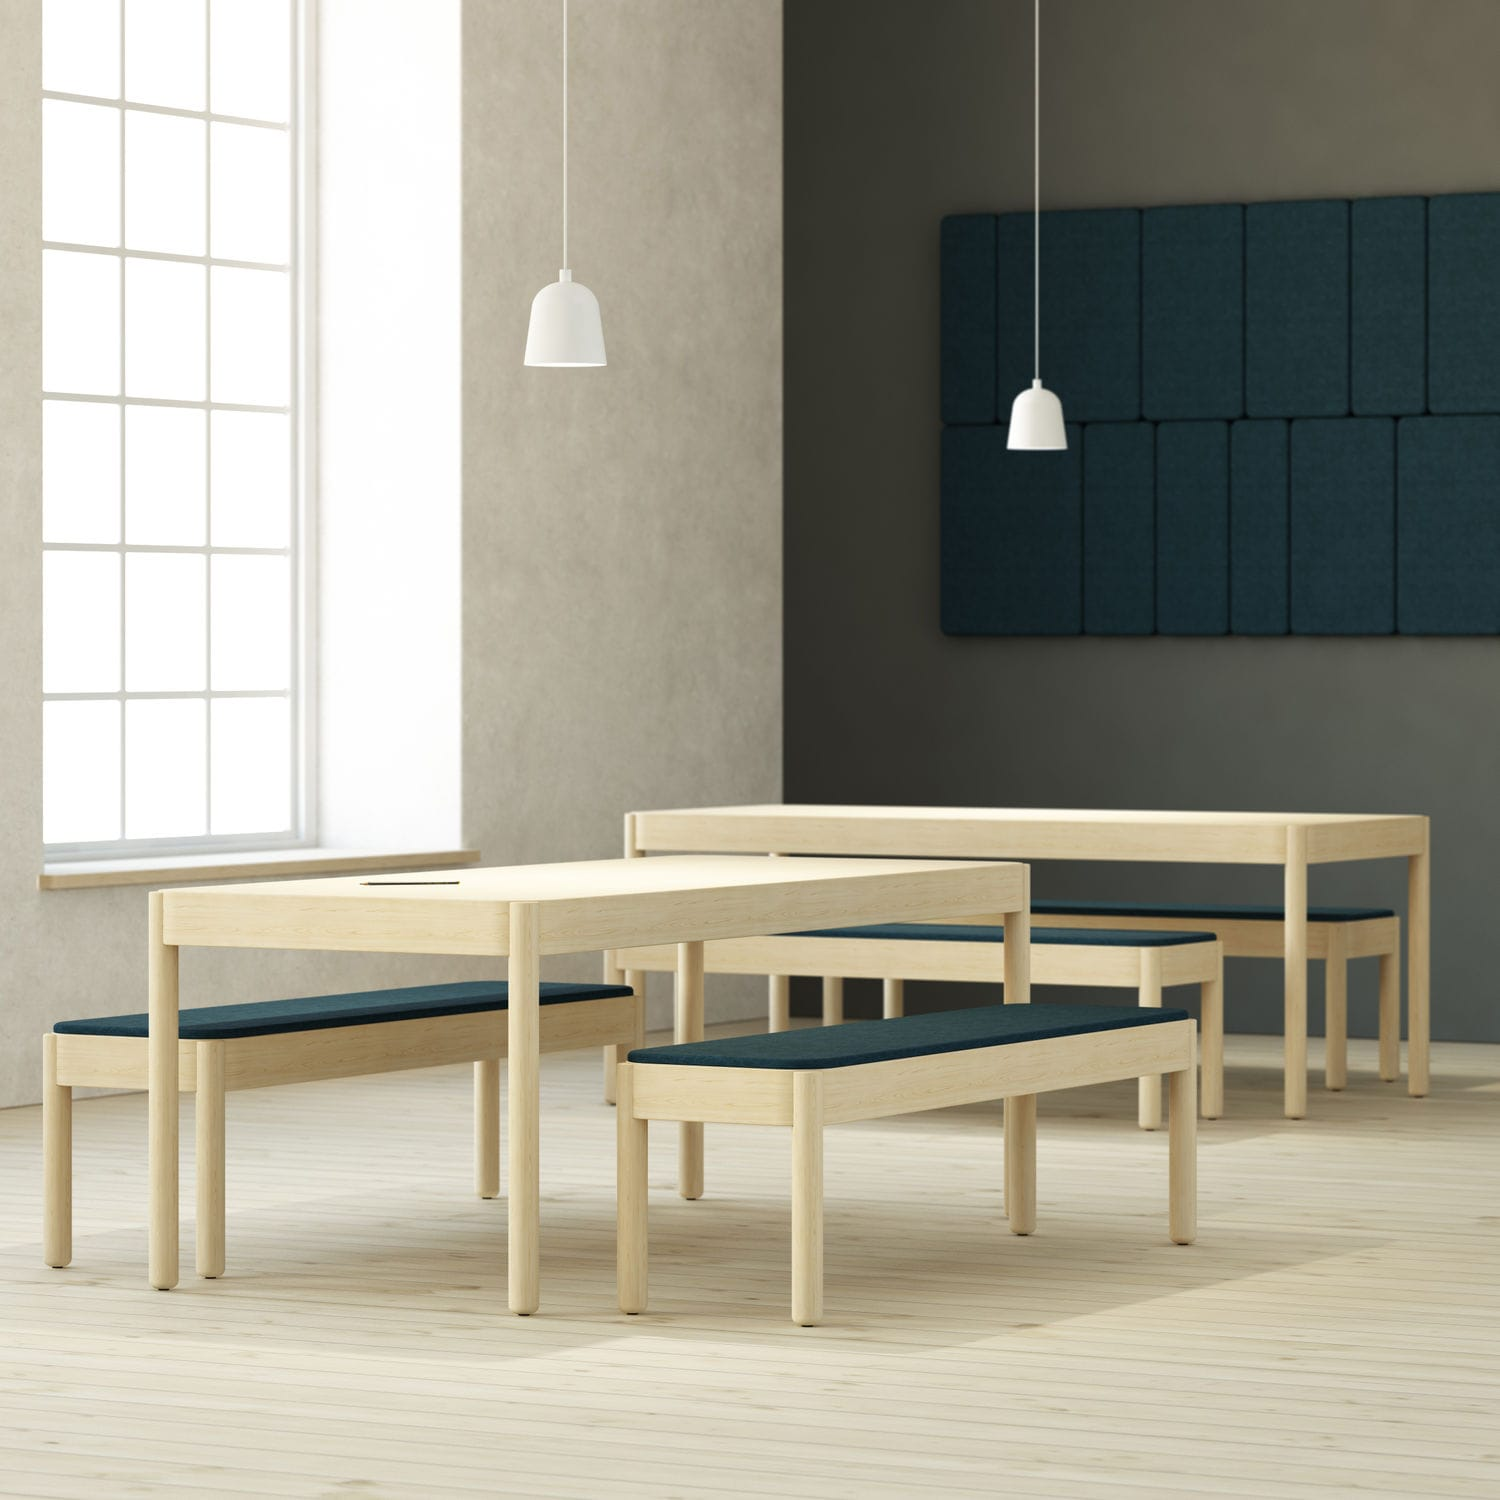 Table Banc Bois Interieur ensemble table et bancs contemporain / en bois / mdf / d